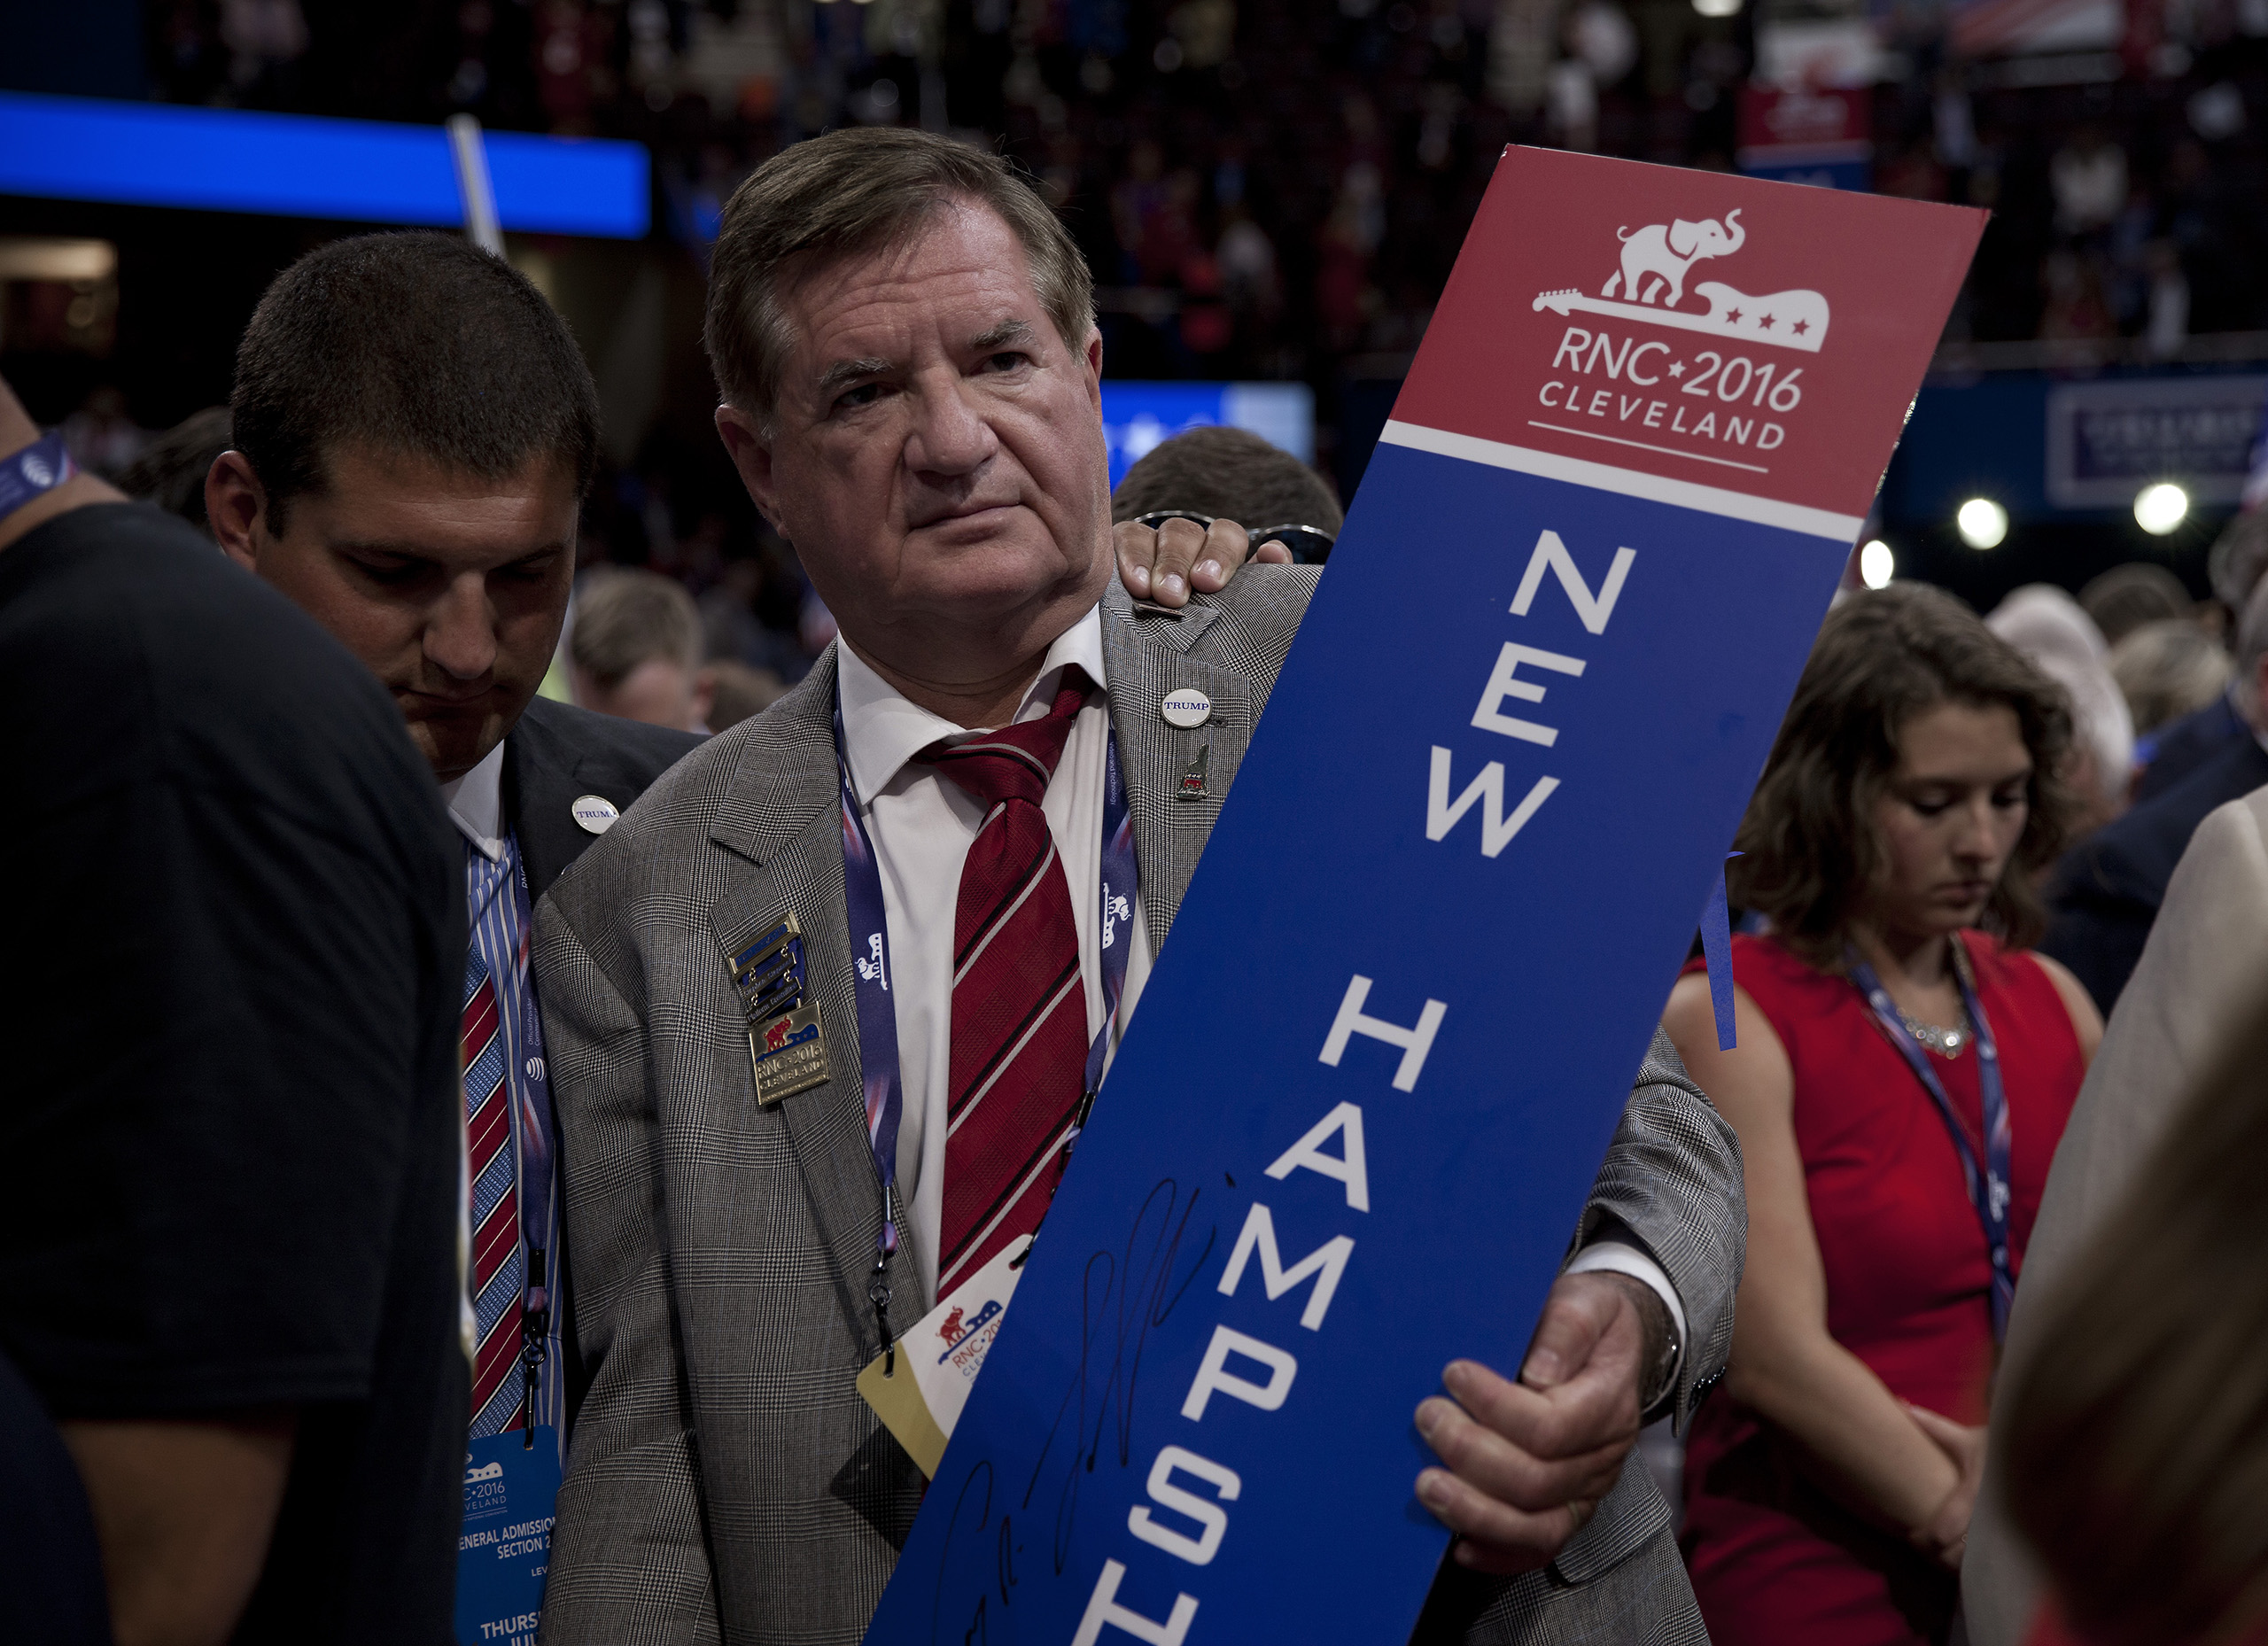 A delegate from New Hampshire after the Republican National Convention on July 21, 2016 at the Quicken Loans Arena in Cleveland.